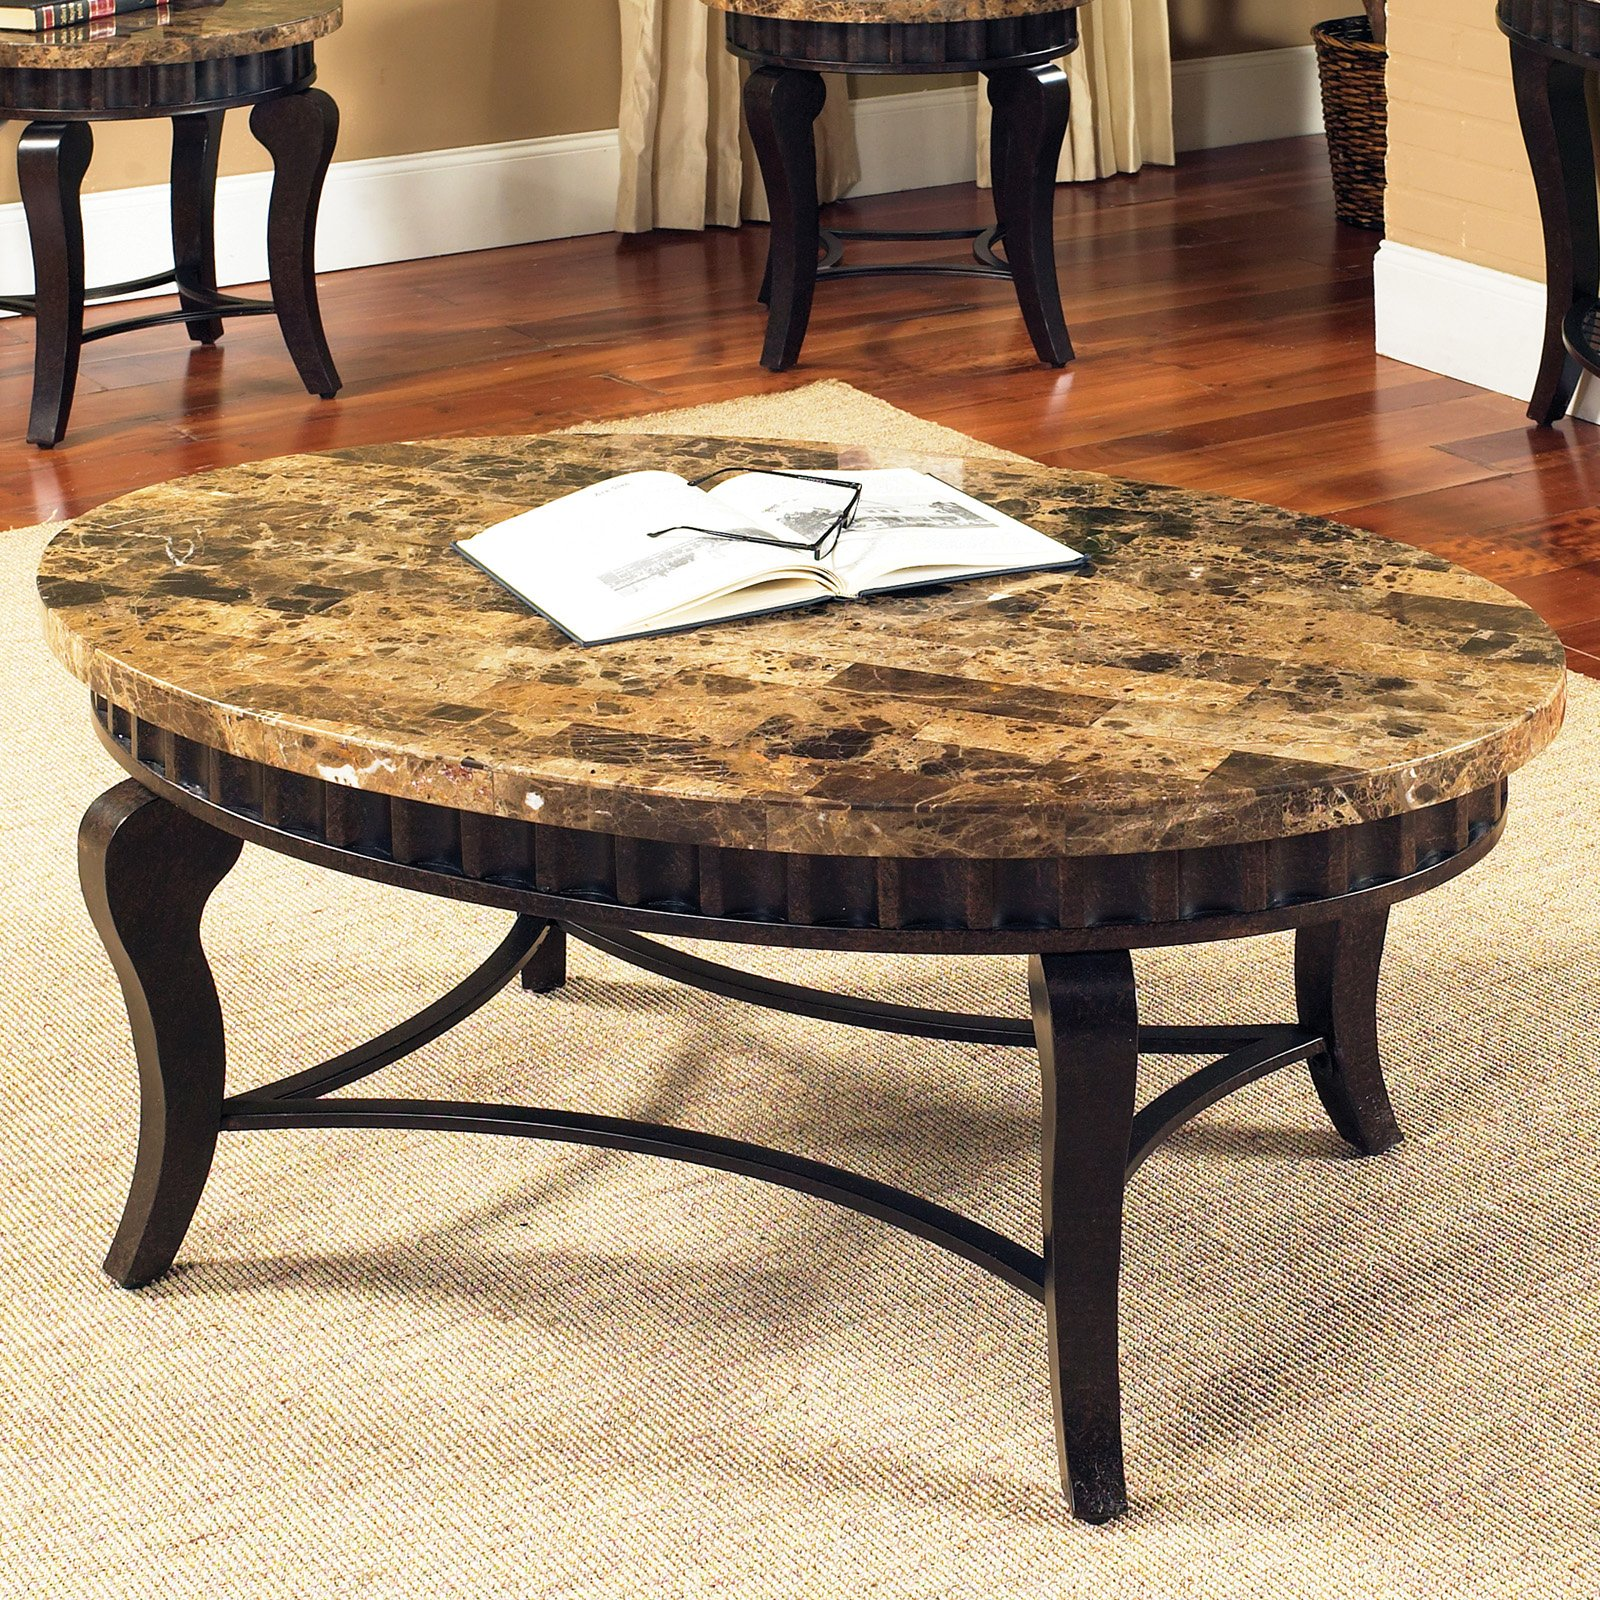 Amazing Charming Round Natural Brown Granite Top Coffee Table With Four Black  Wooden Legs On Ivory Rug